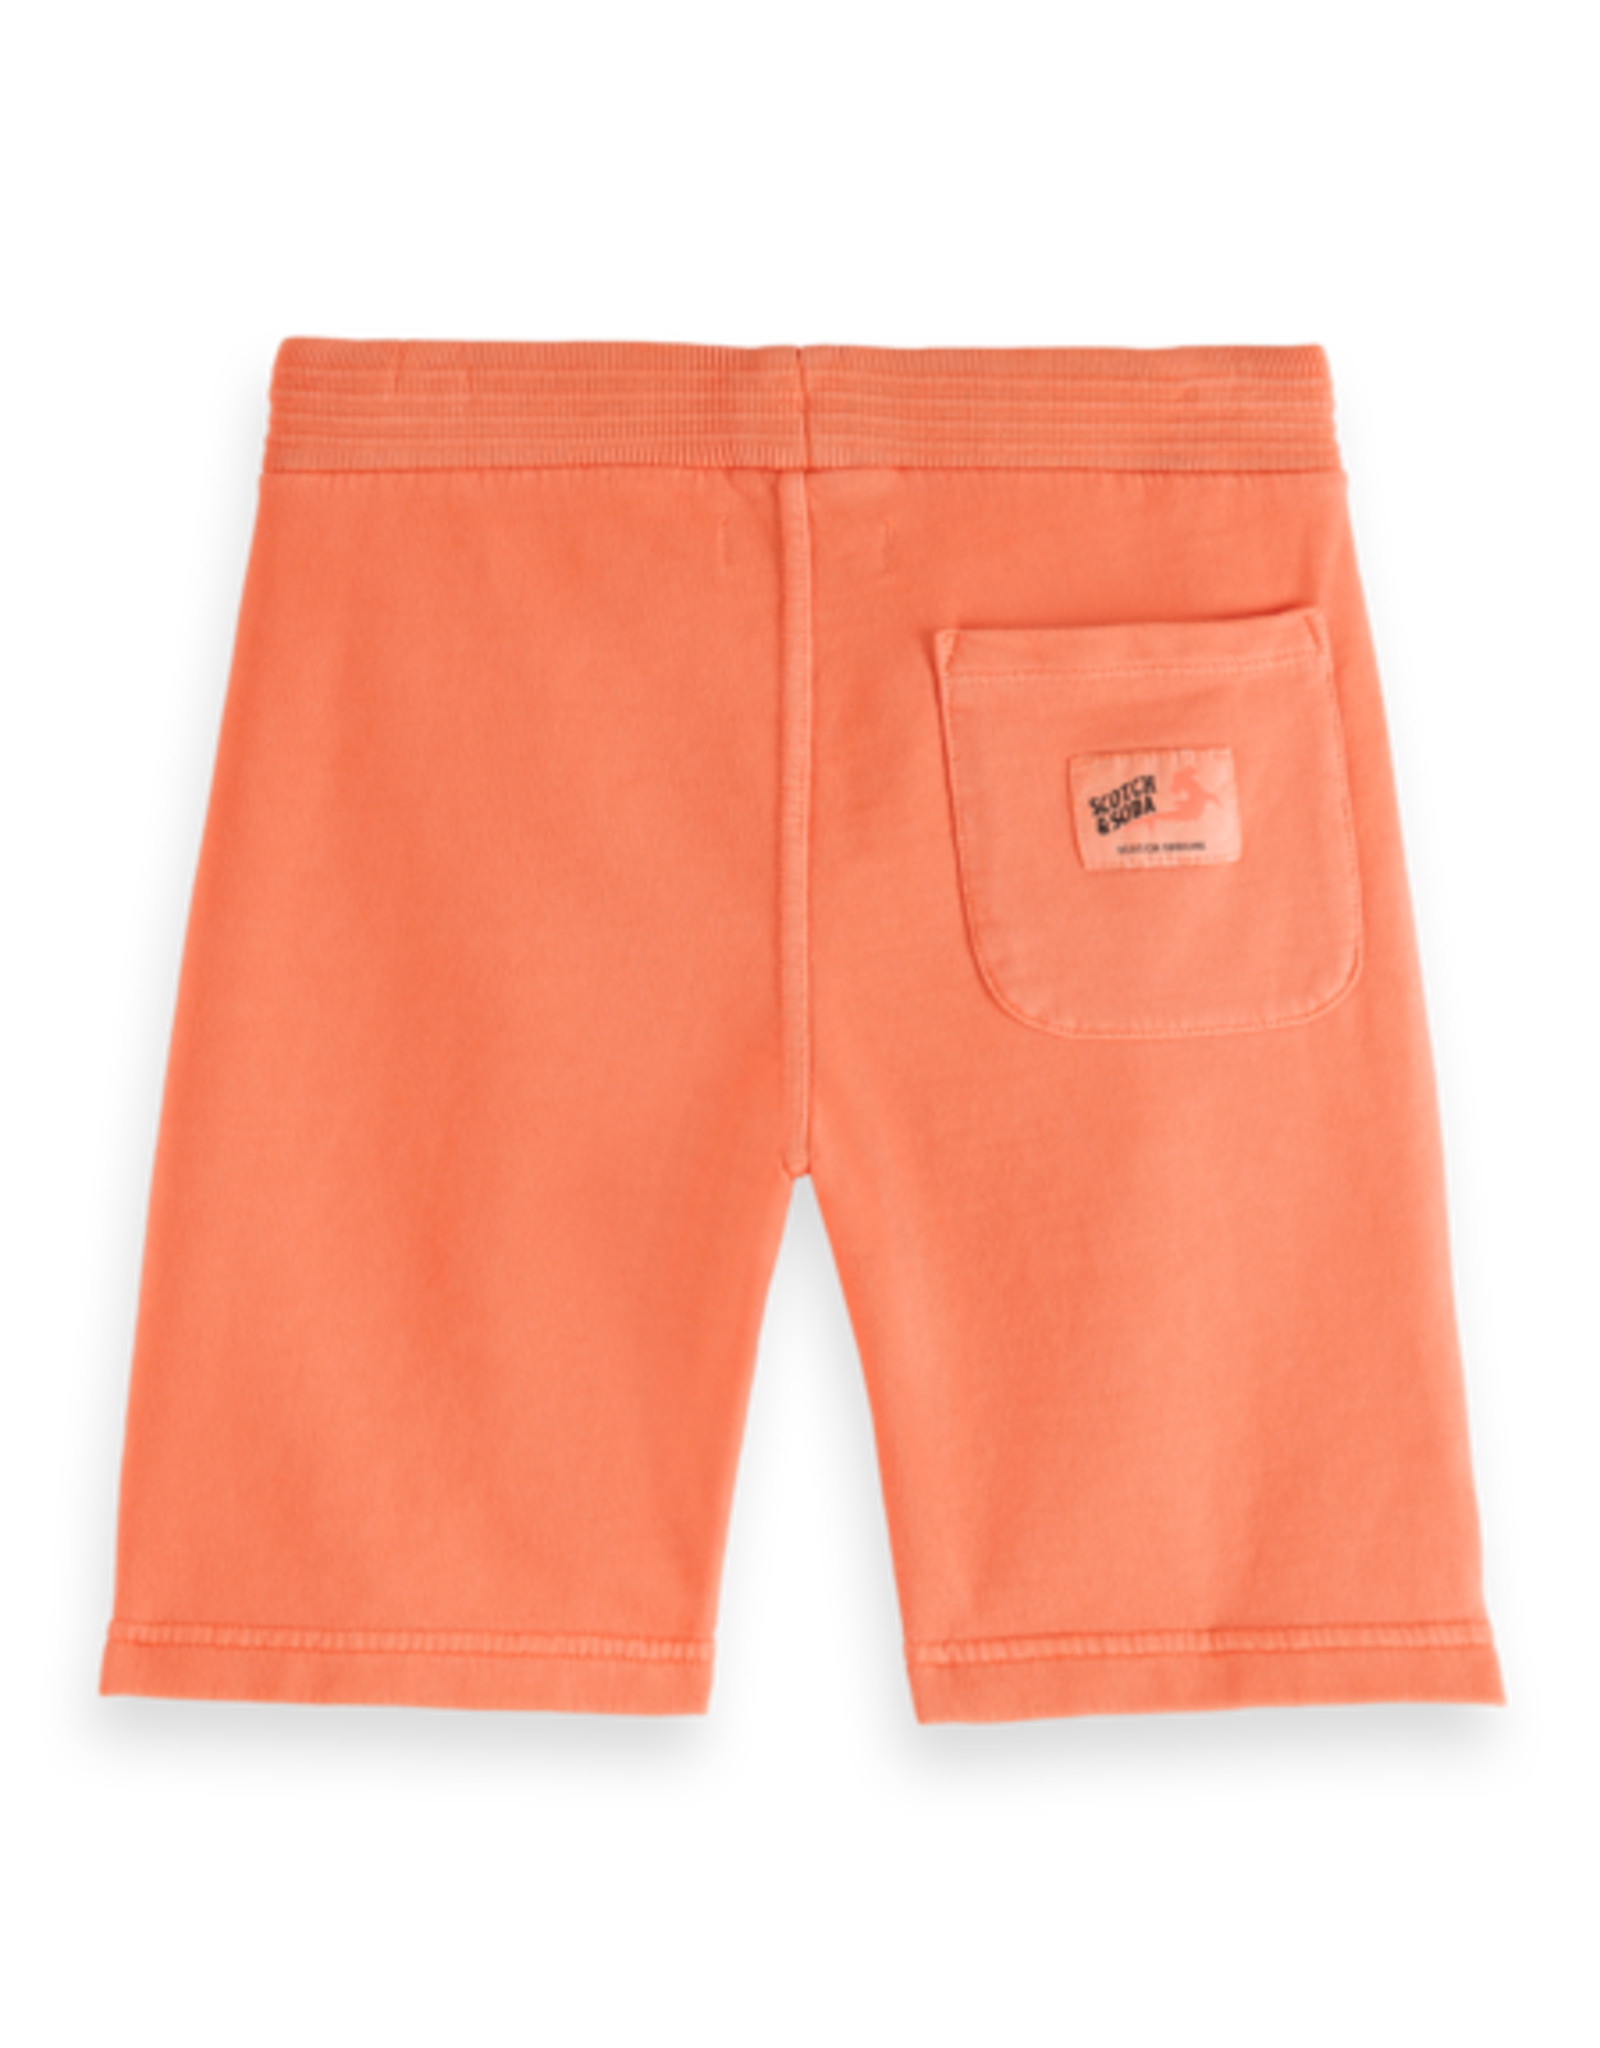 SCOTCH & SODA SCOTCH & SODA Shorts col 3539